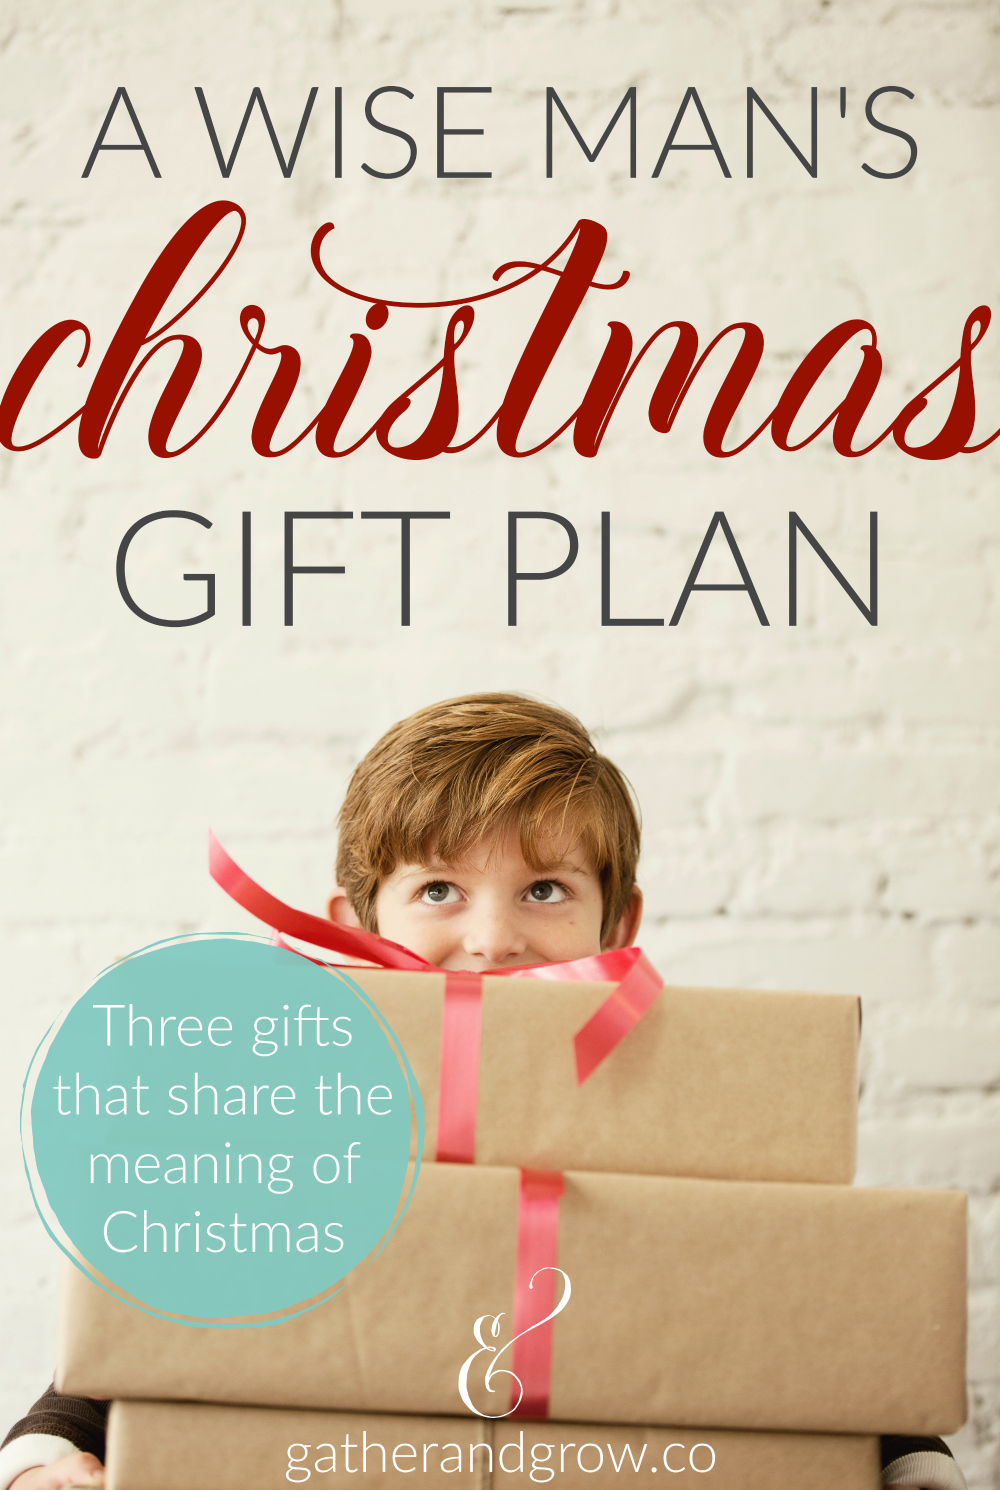 A Wise Man's Christmas Gift Plan